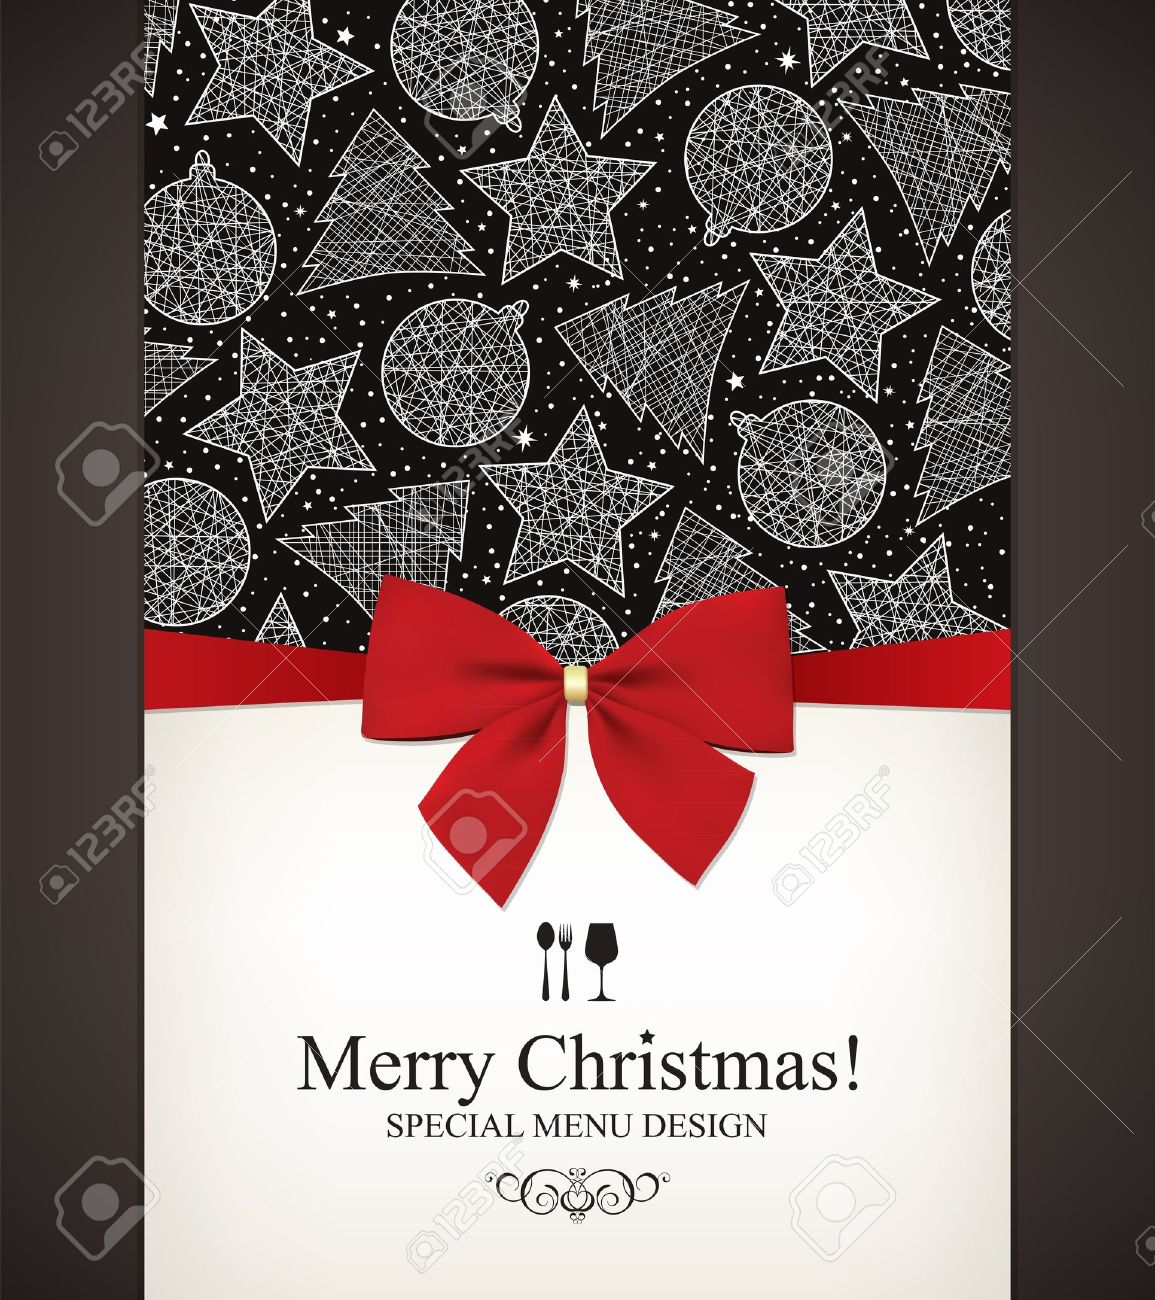 special christmas menu design royalty free cliparts vectors and